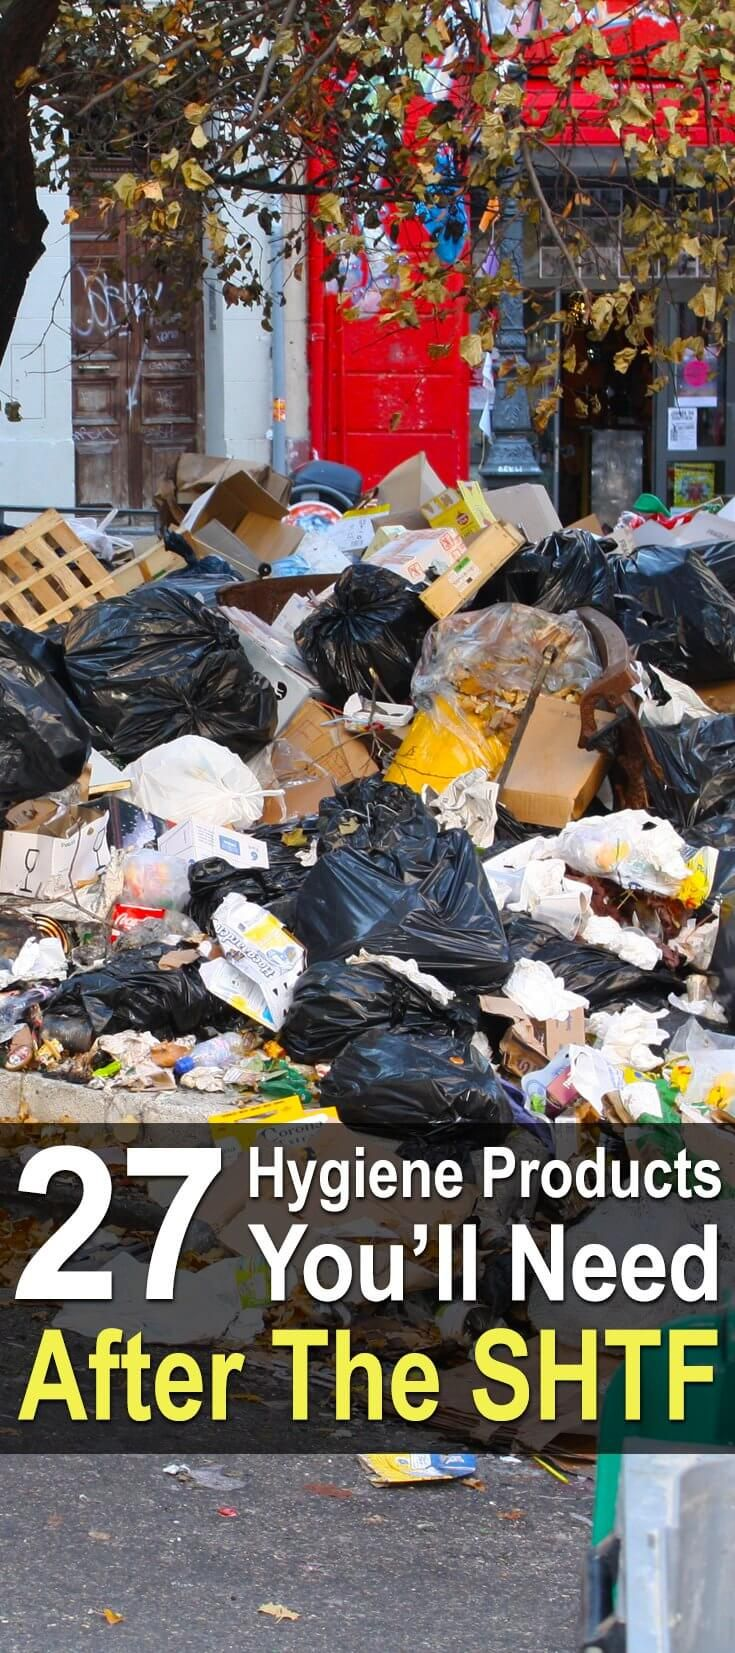 After a disaster, the level of hygiene will plunge due to a lack water, no sewage treatment plants, and no garbage collection. Get these hygiene items.  via @urbanalan